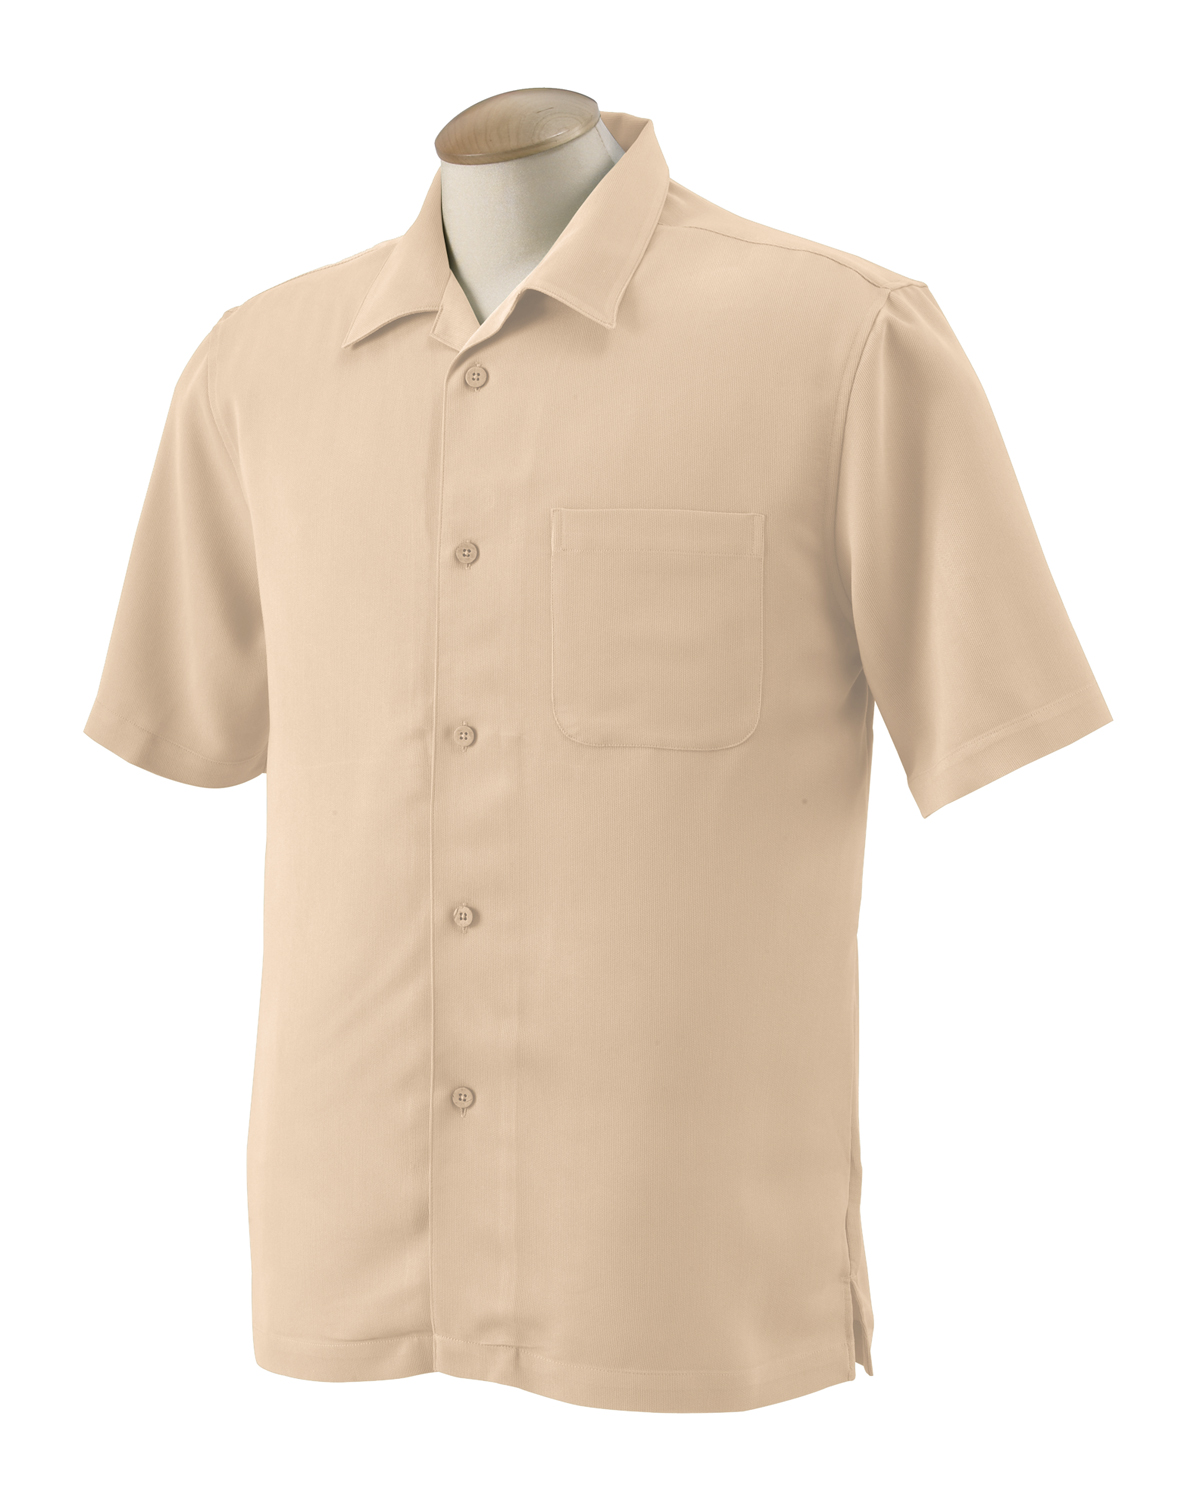 56df95c6a2d Buy Mens Bahama Cord Camp Shirt - Harriton Online at Best price - IL